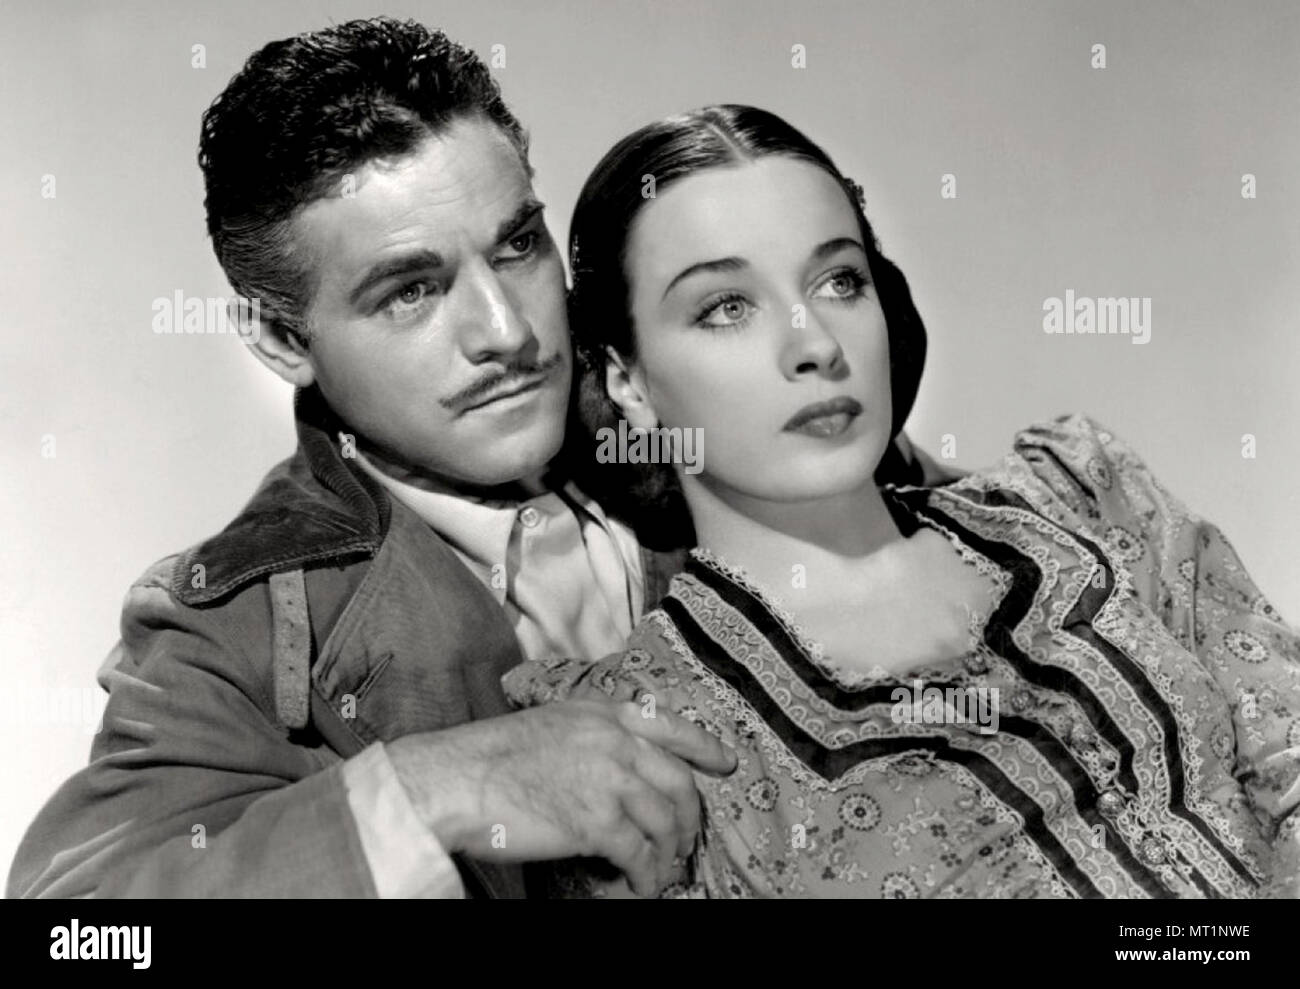 Alan Curtis and Patricia Morison in Hitler's Madman (1943) - Stock Image